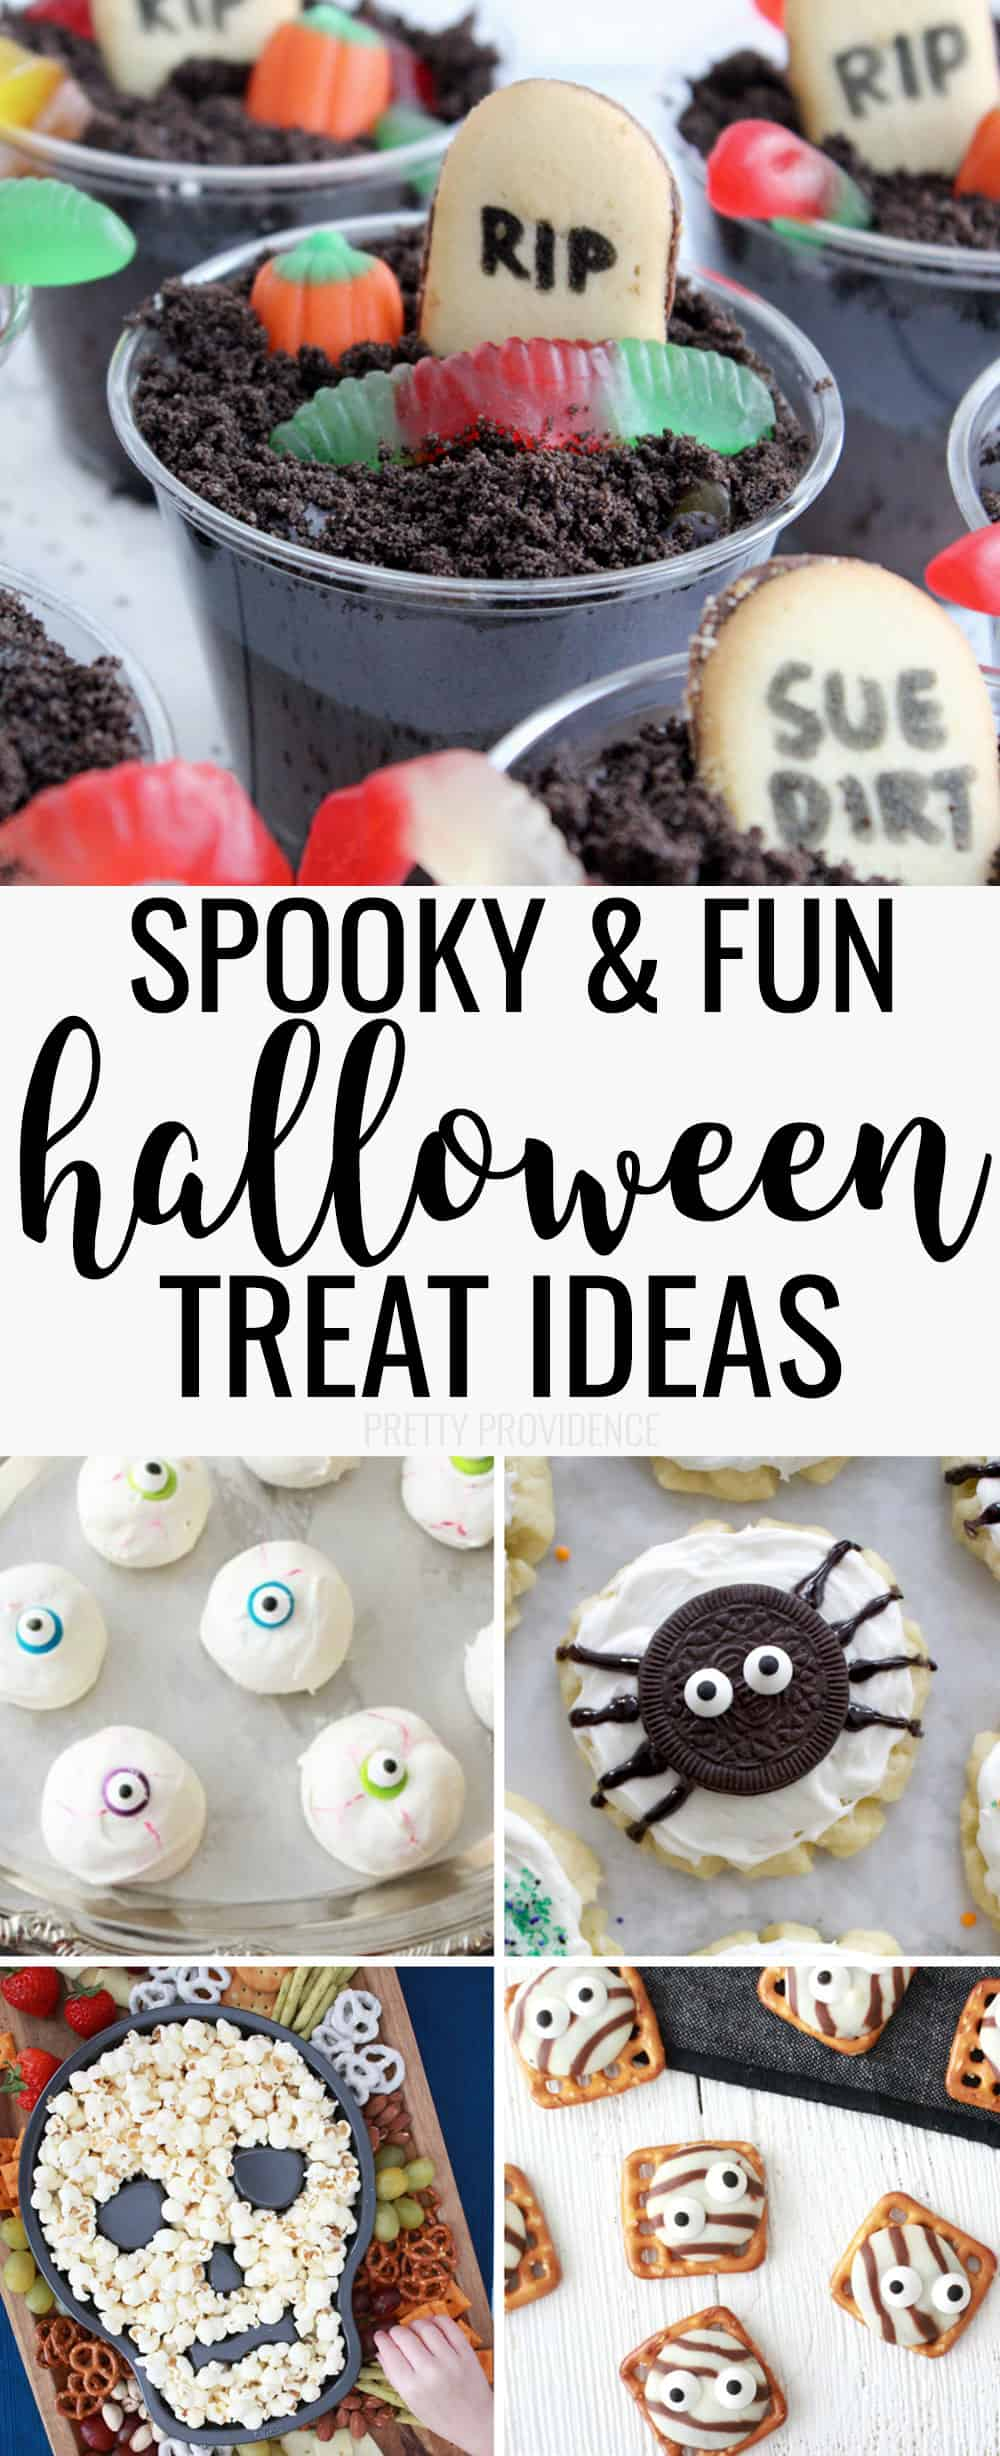 So many fun Halloween treat ideas here! Easy recipes to make for Halloween party or for family night!